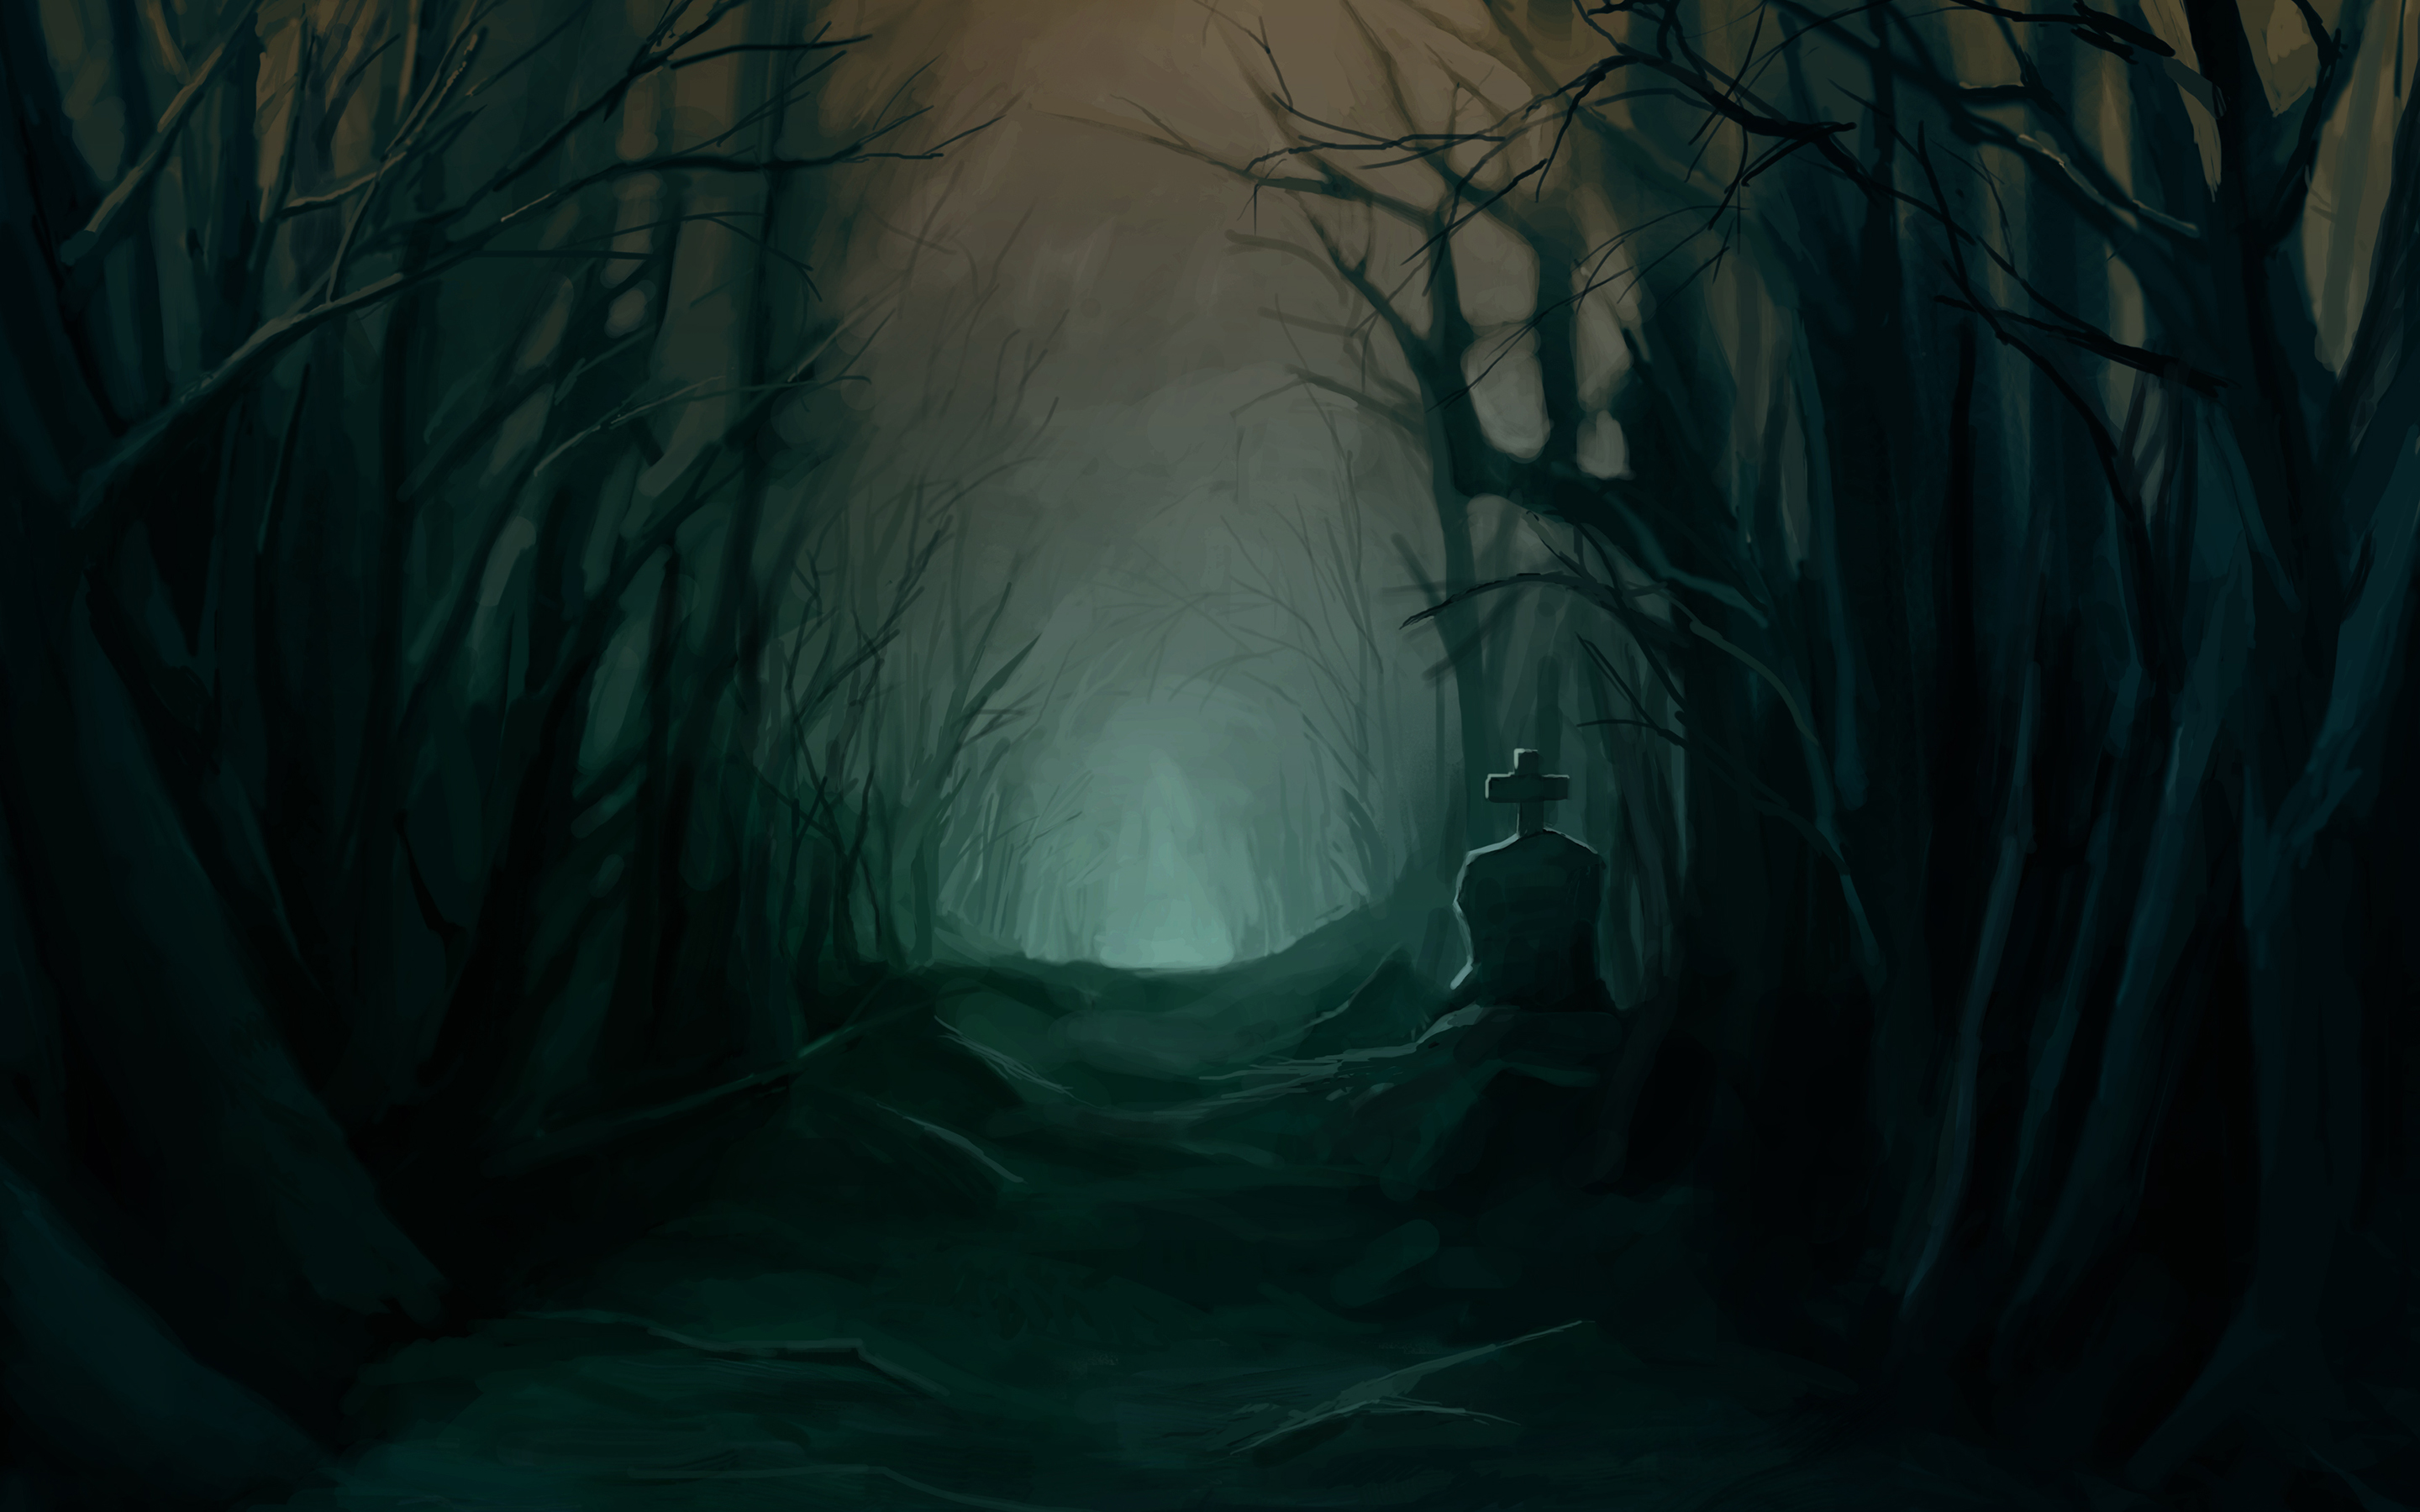 creepy forest wallpaper - Google Search